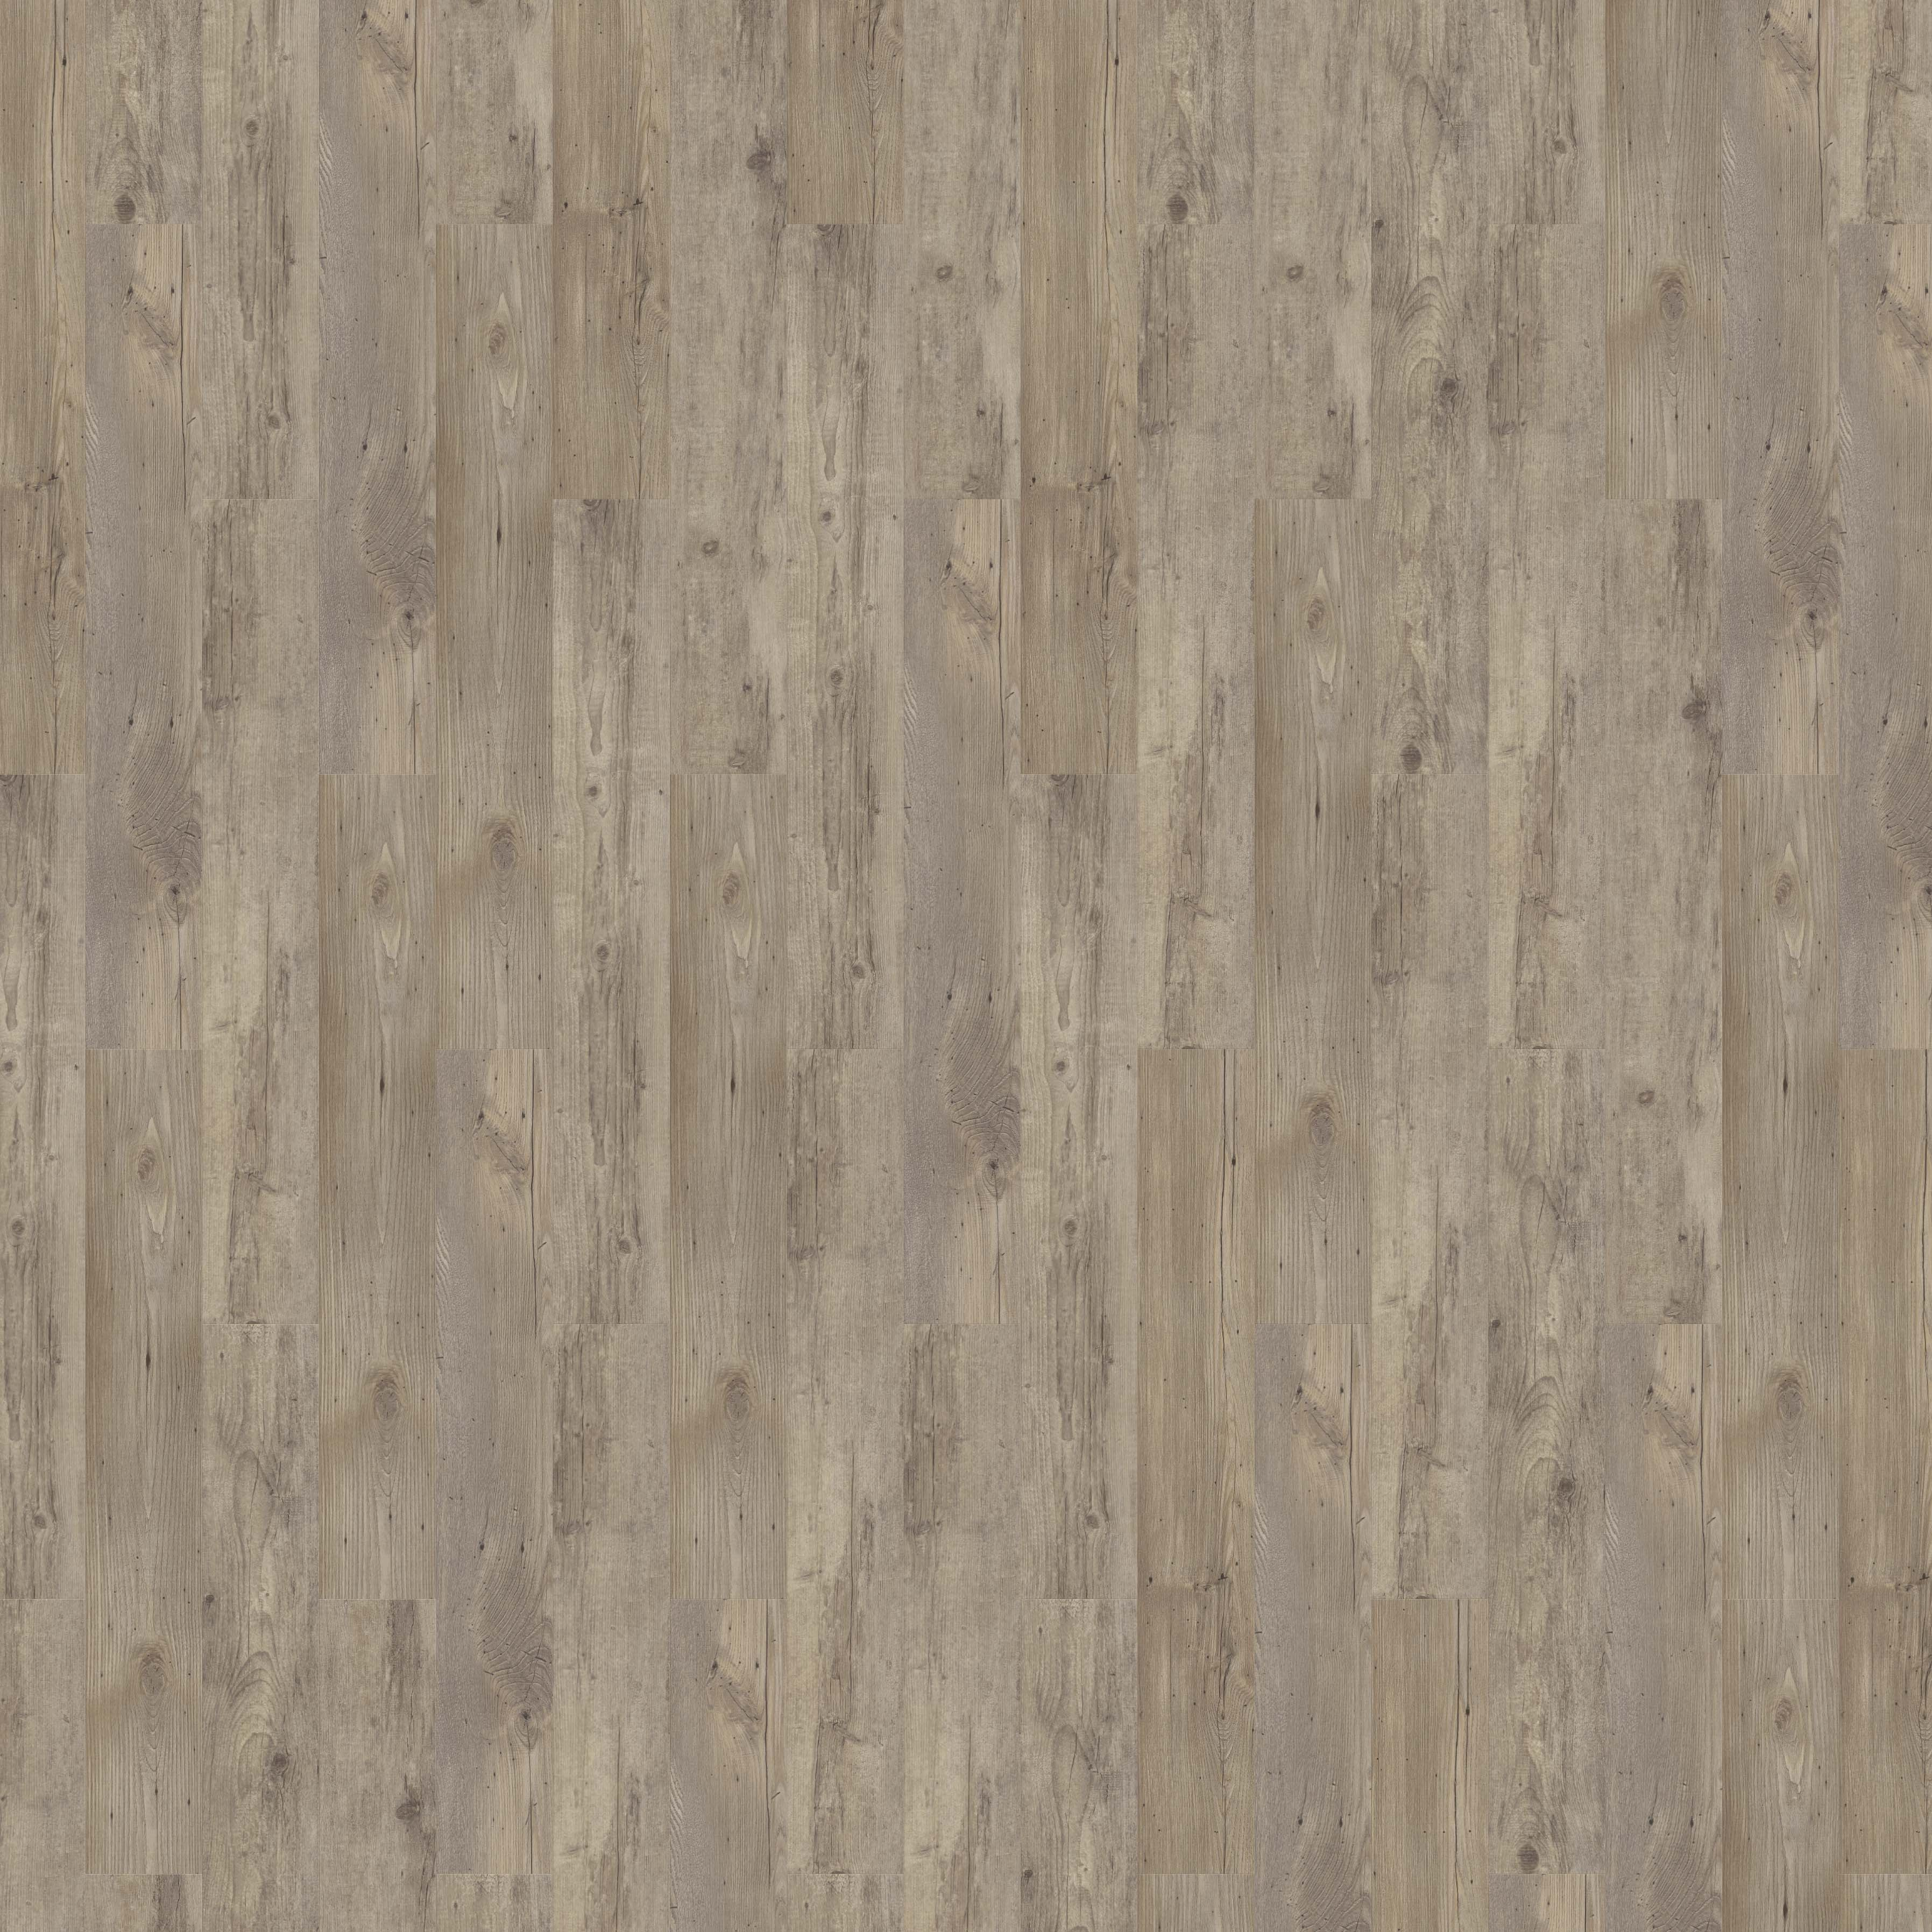 Authentic Plank 81015 Shade